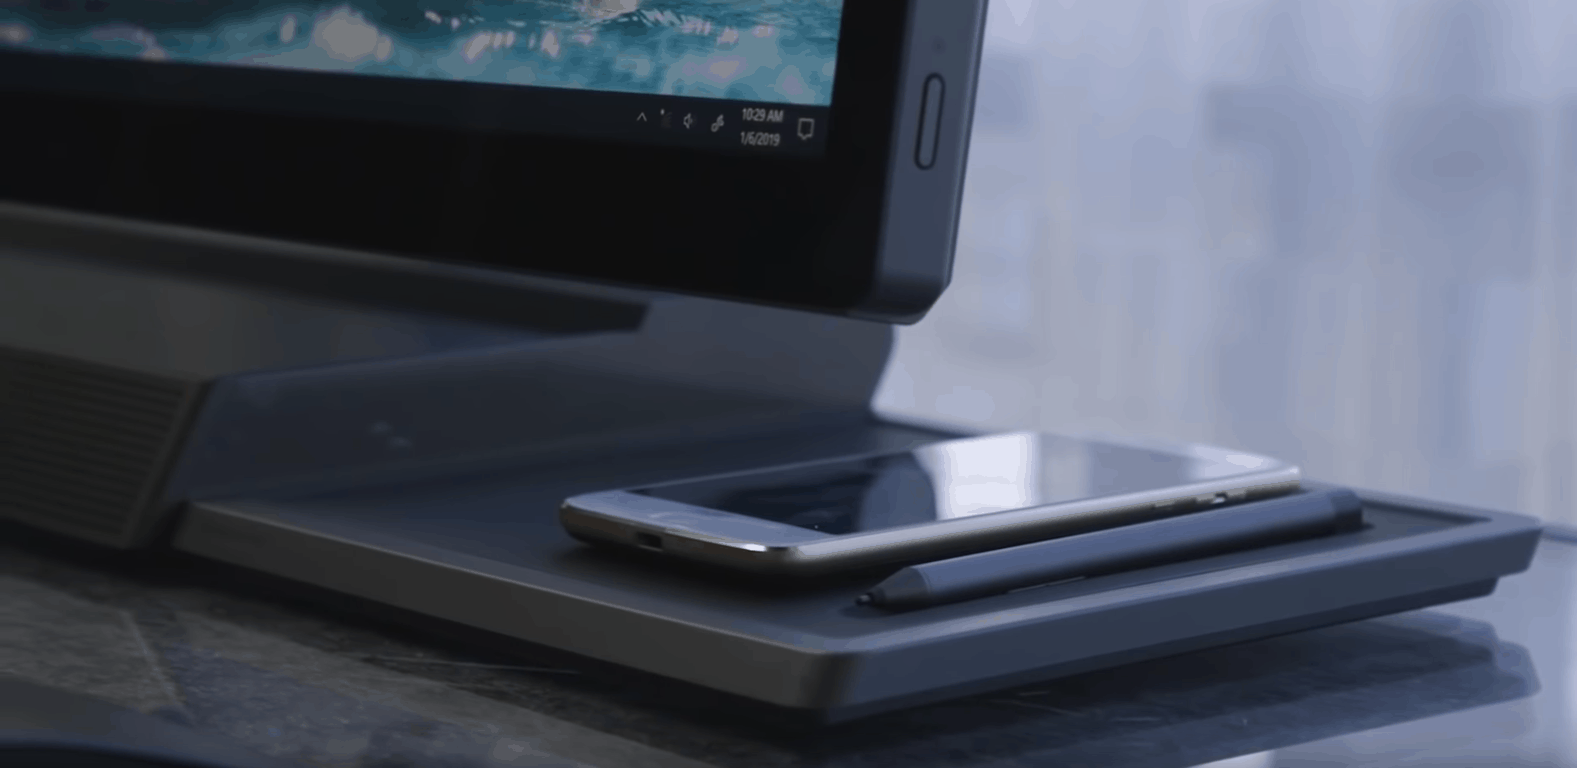 Lenovo ideacentre yoga a940: the surface studio done right - onmsft. Com - july 29, 2019